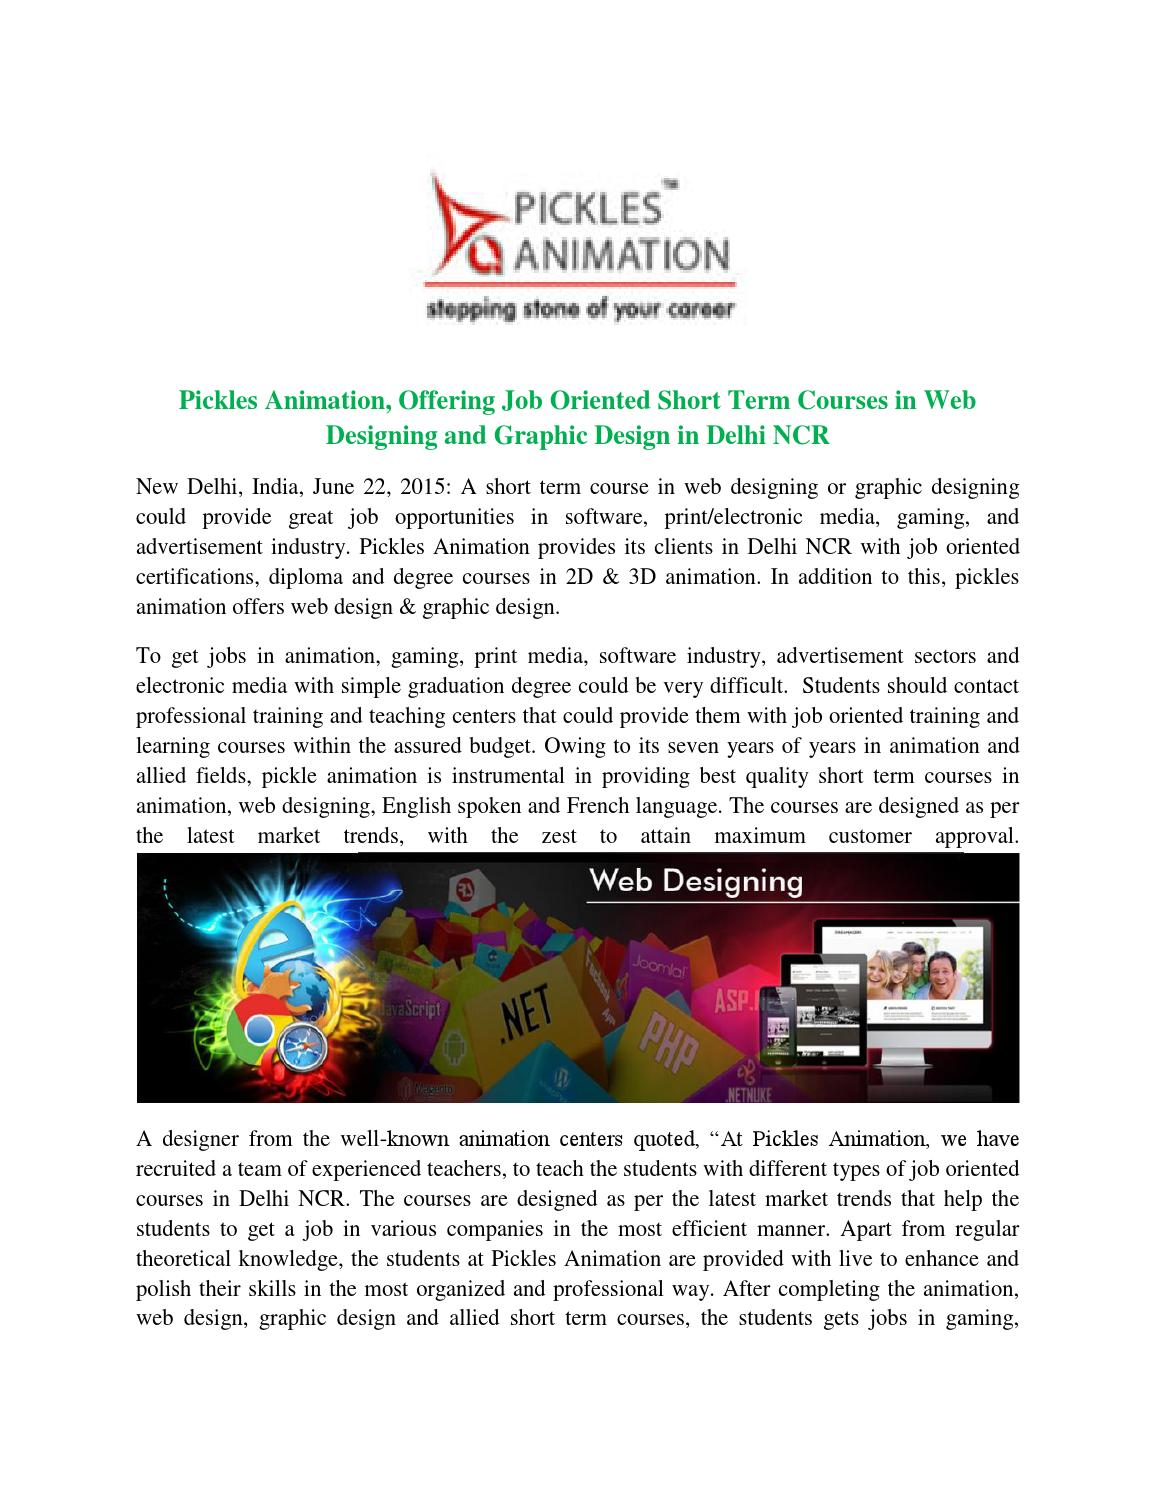 Pickles animation, offering job oriented short term ...